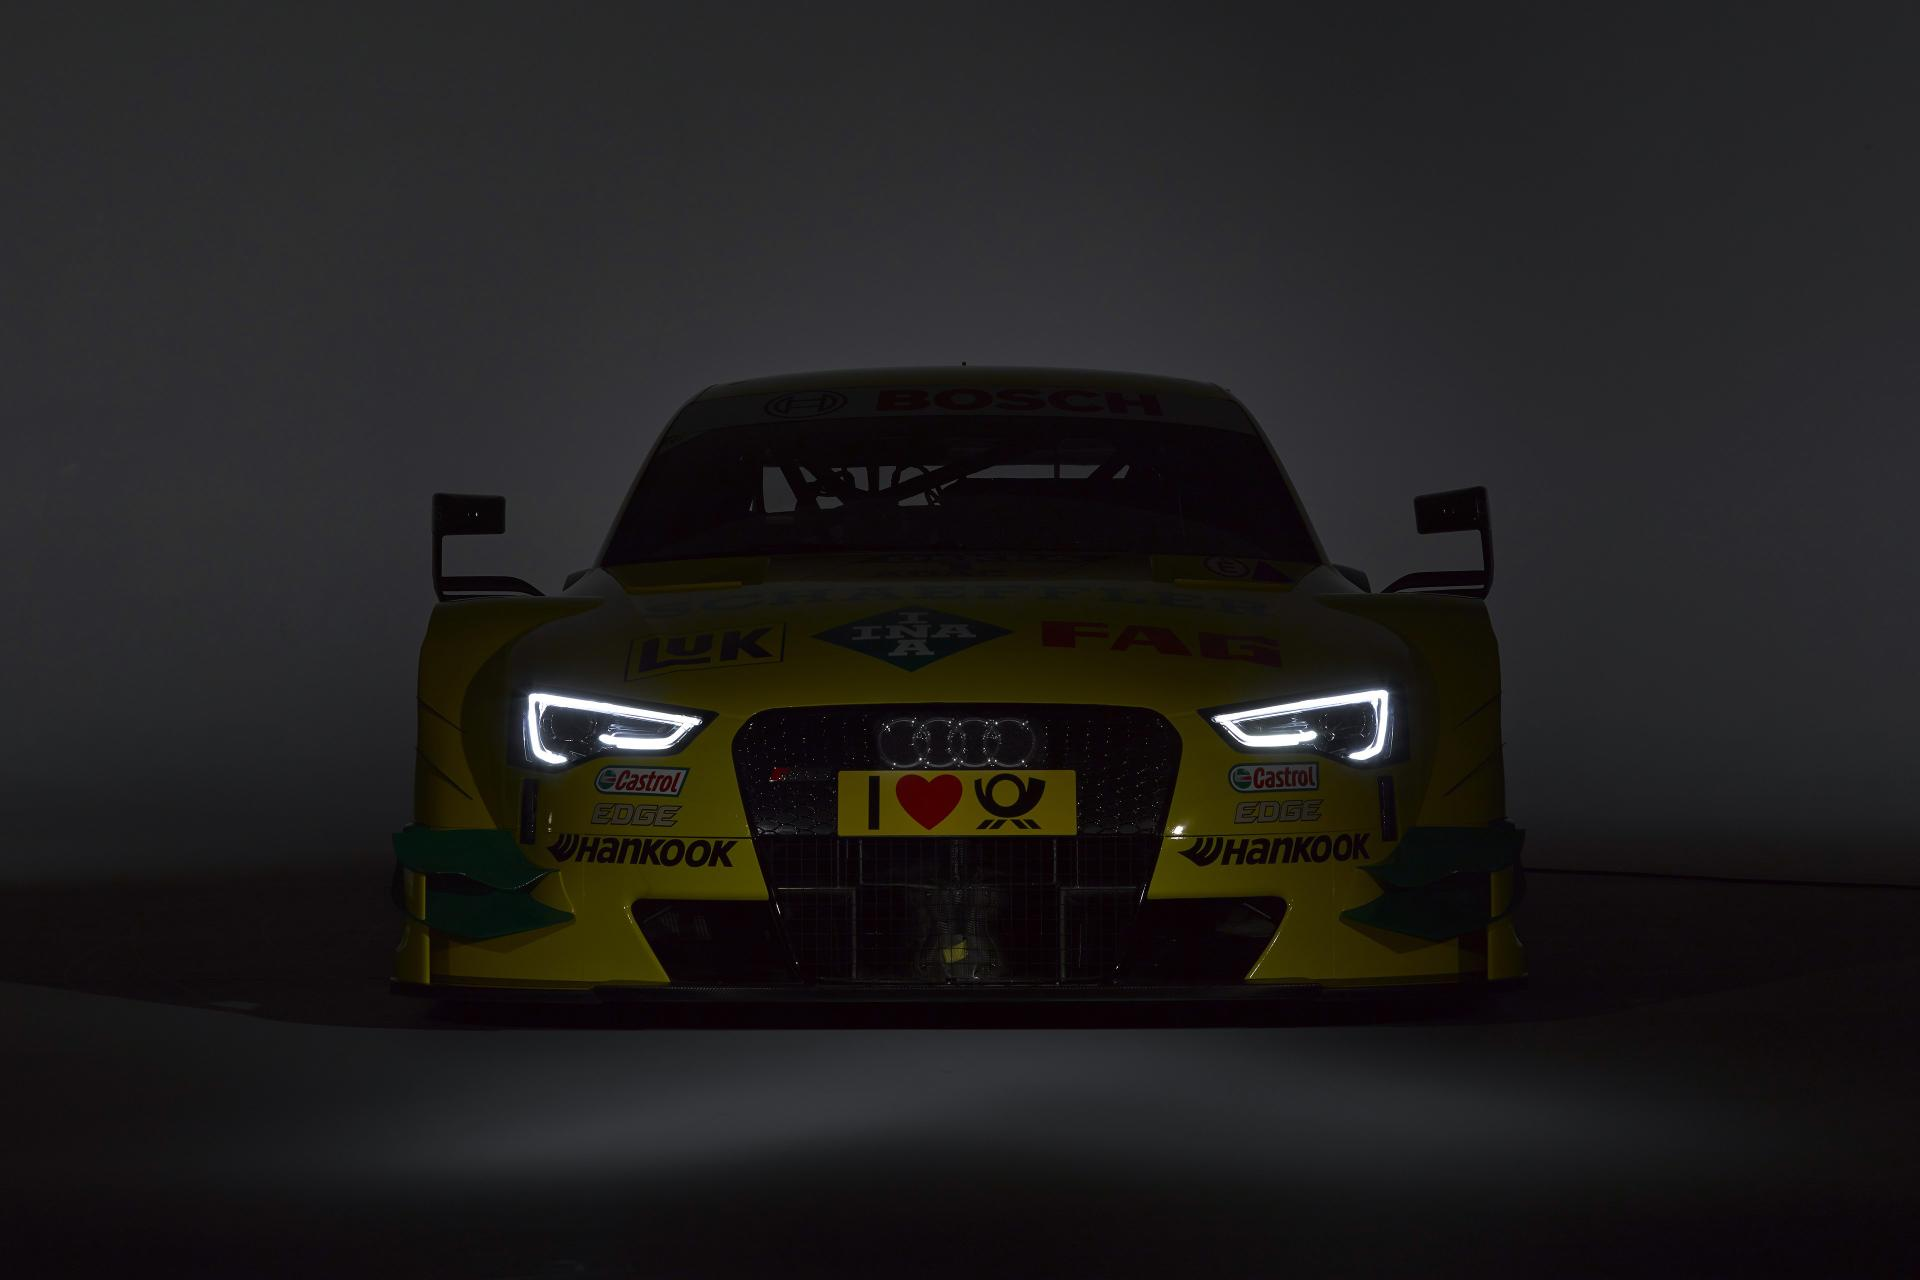 X Japan Wallpaper Hd 2014 Audi Rs 5 Dtm News And Information Research And Pricing